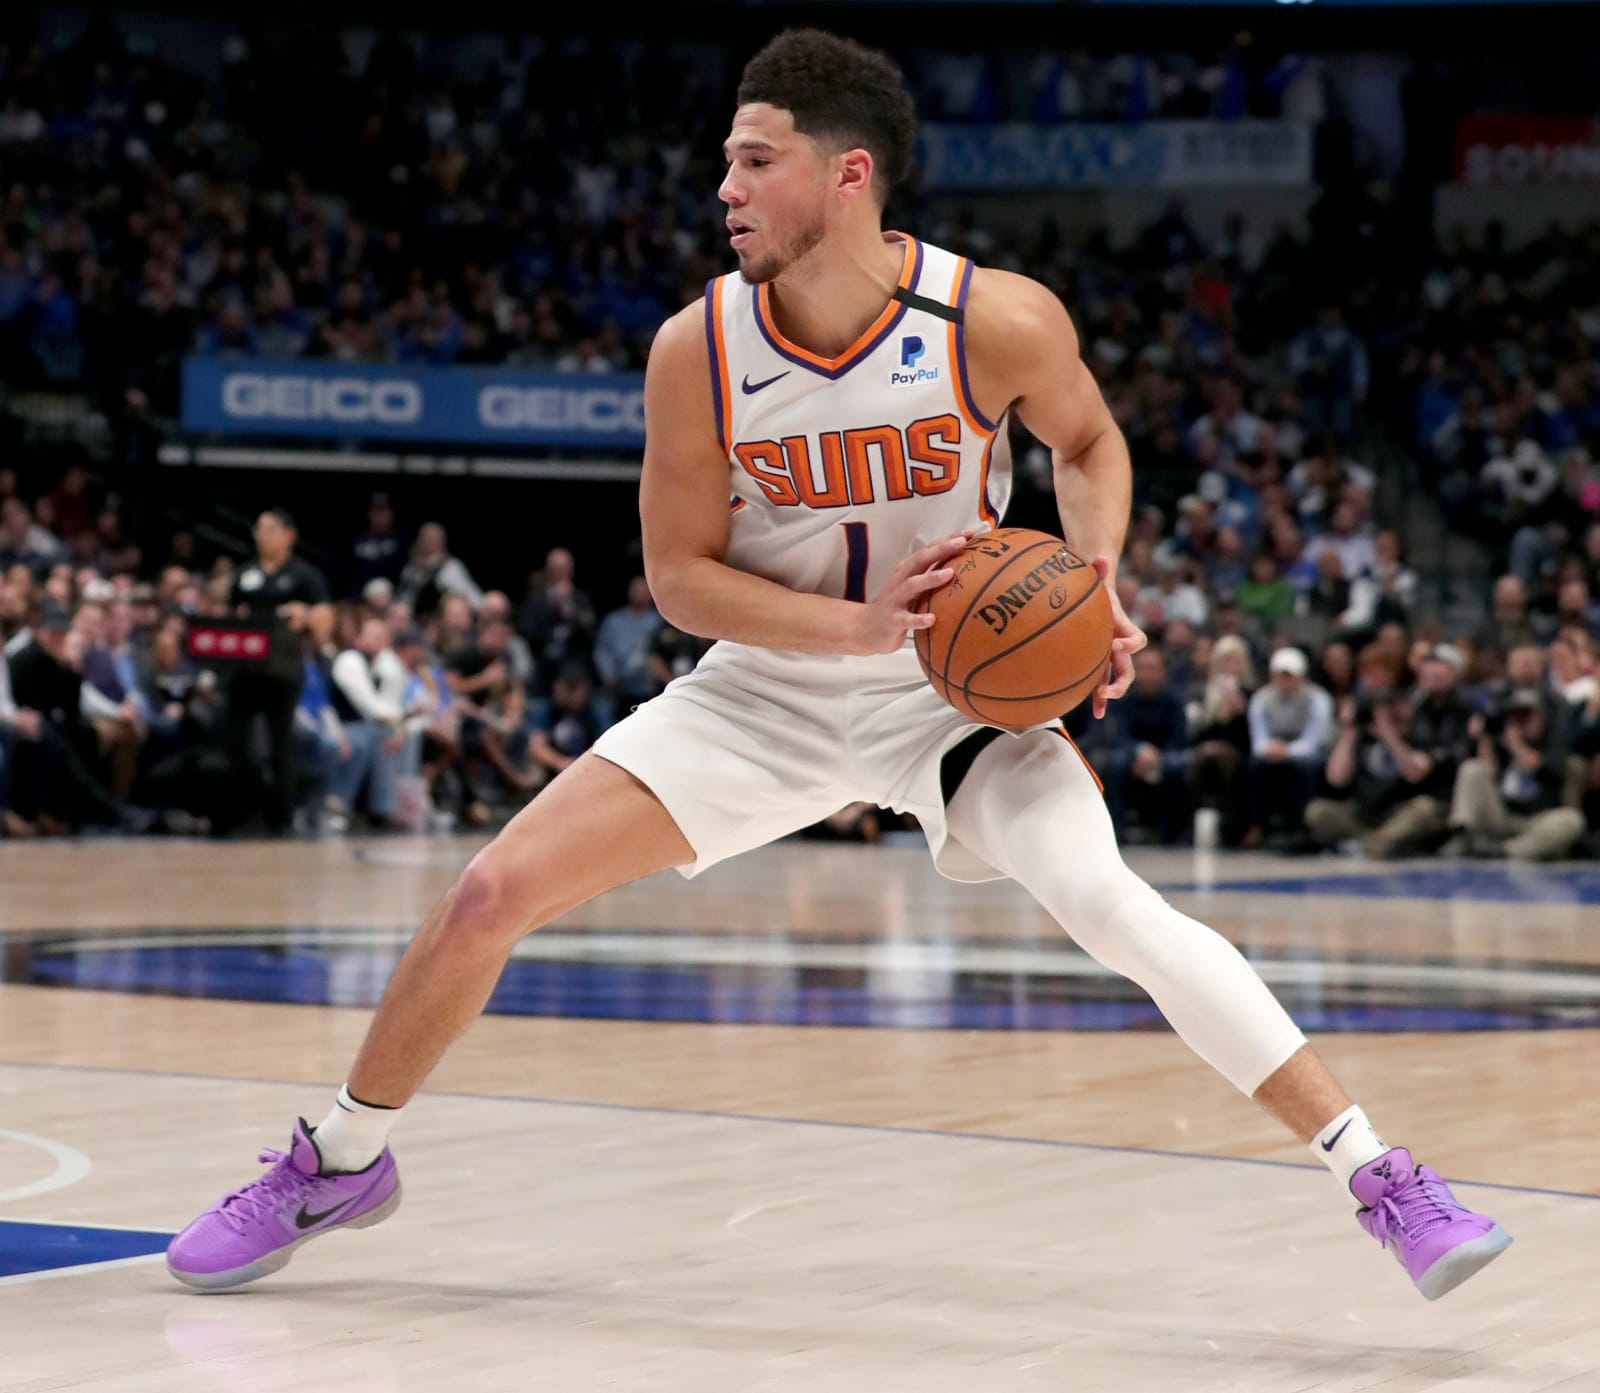 Phoenix Suns, Devin Booker (Photo by Tom Pennington/Getty Images)